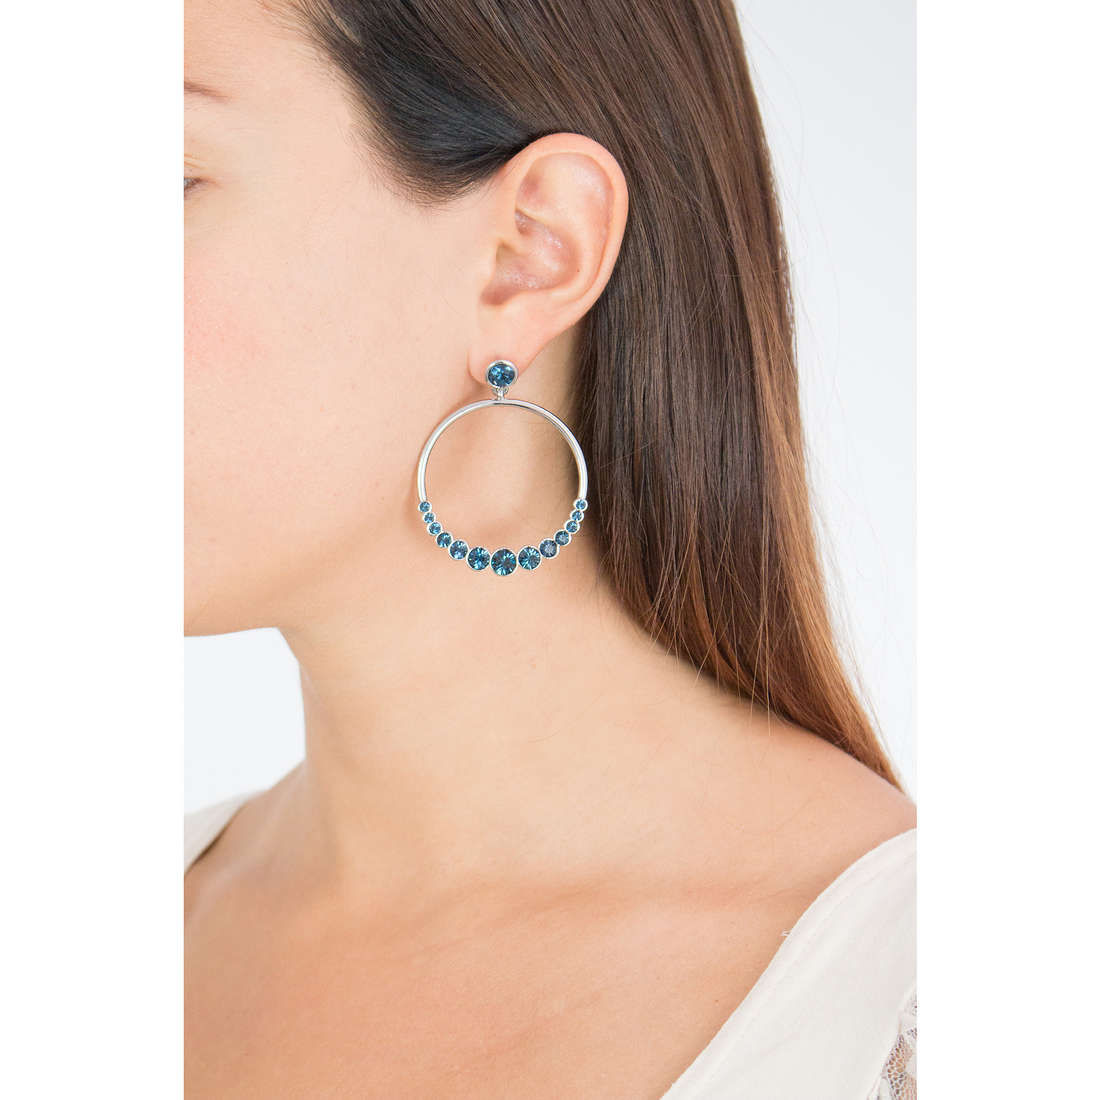 Luca Barra boucles d'oreille Thelma femme LBOK738 photo wearing